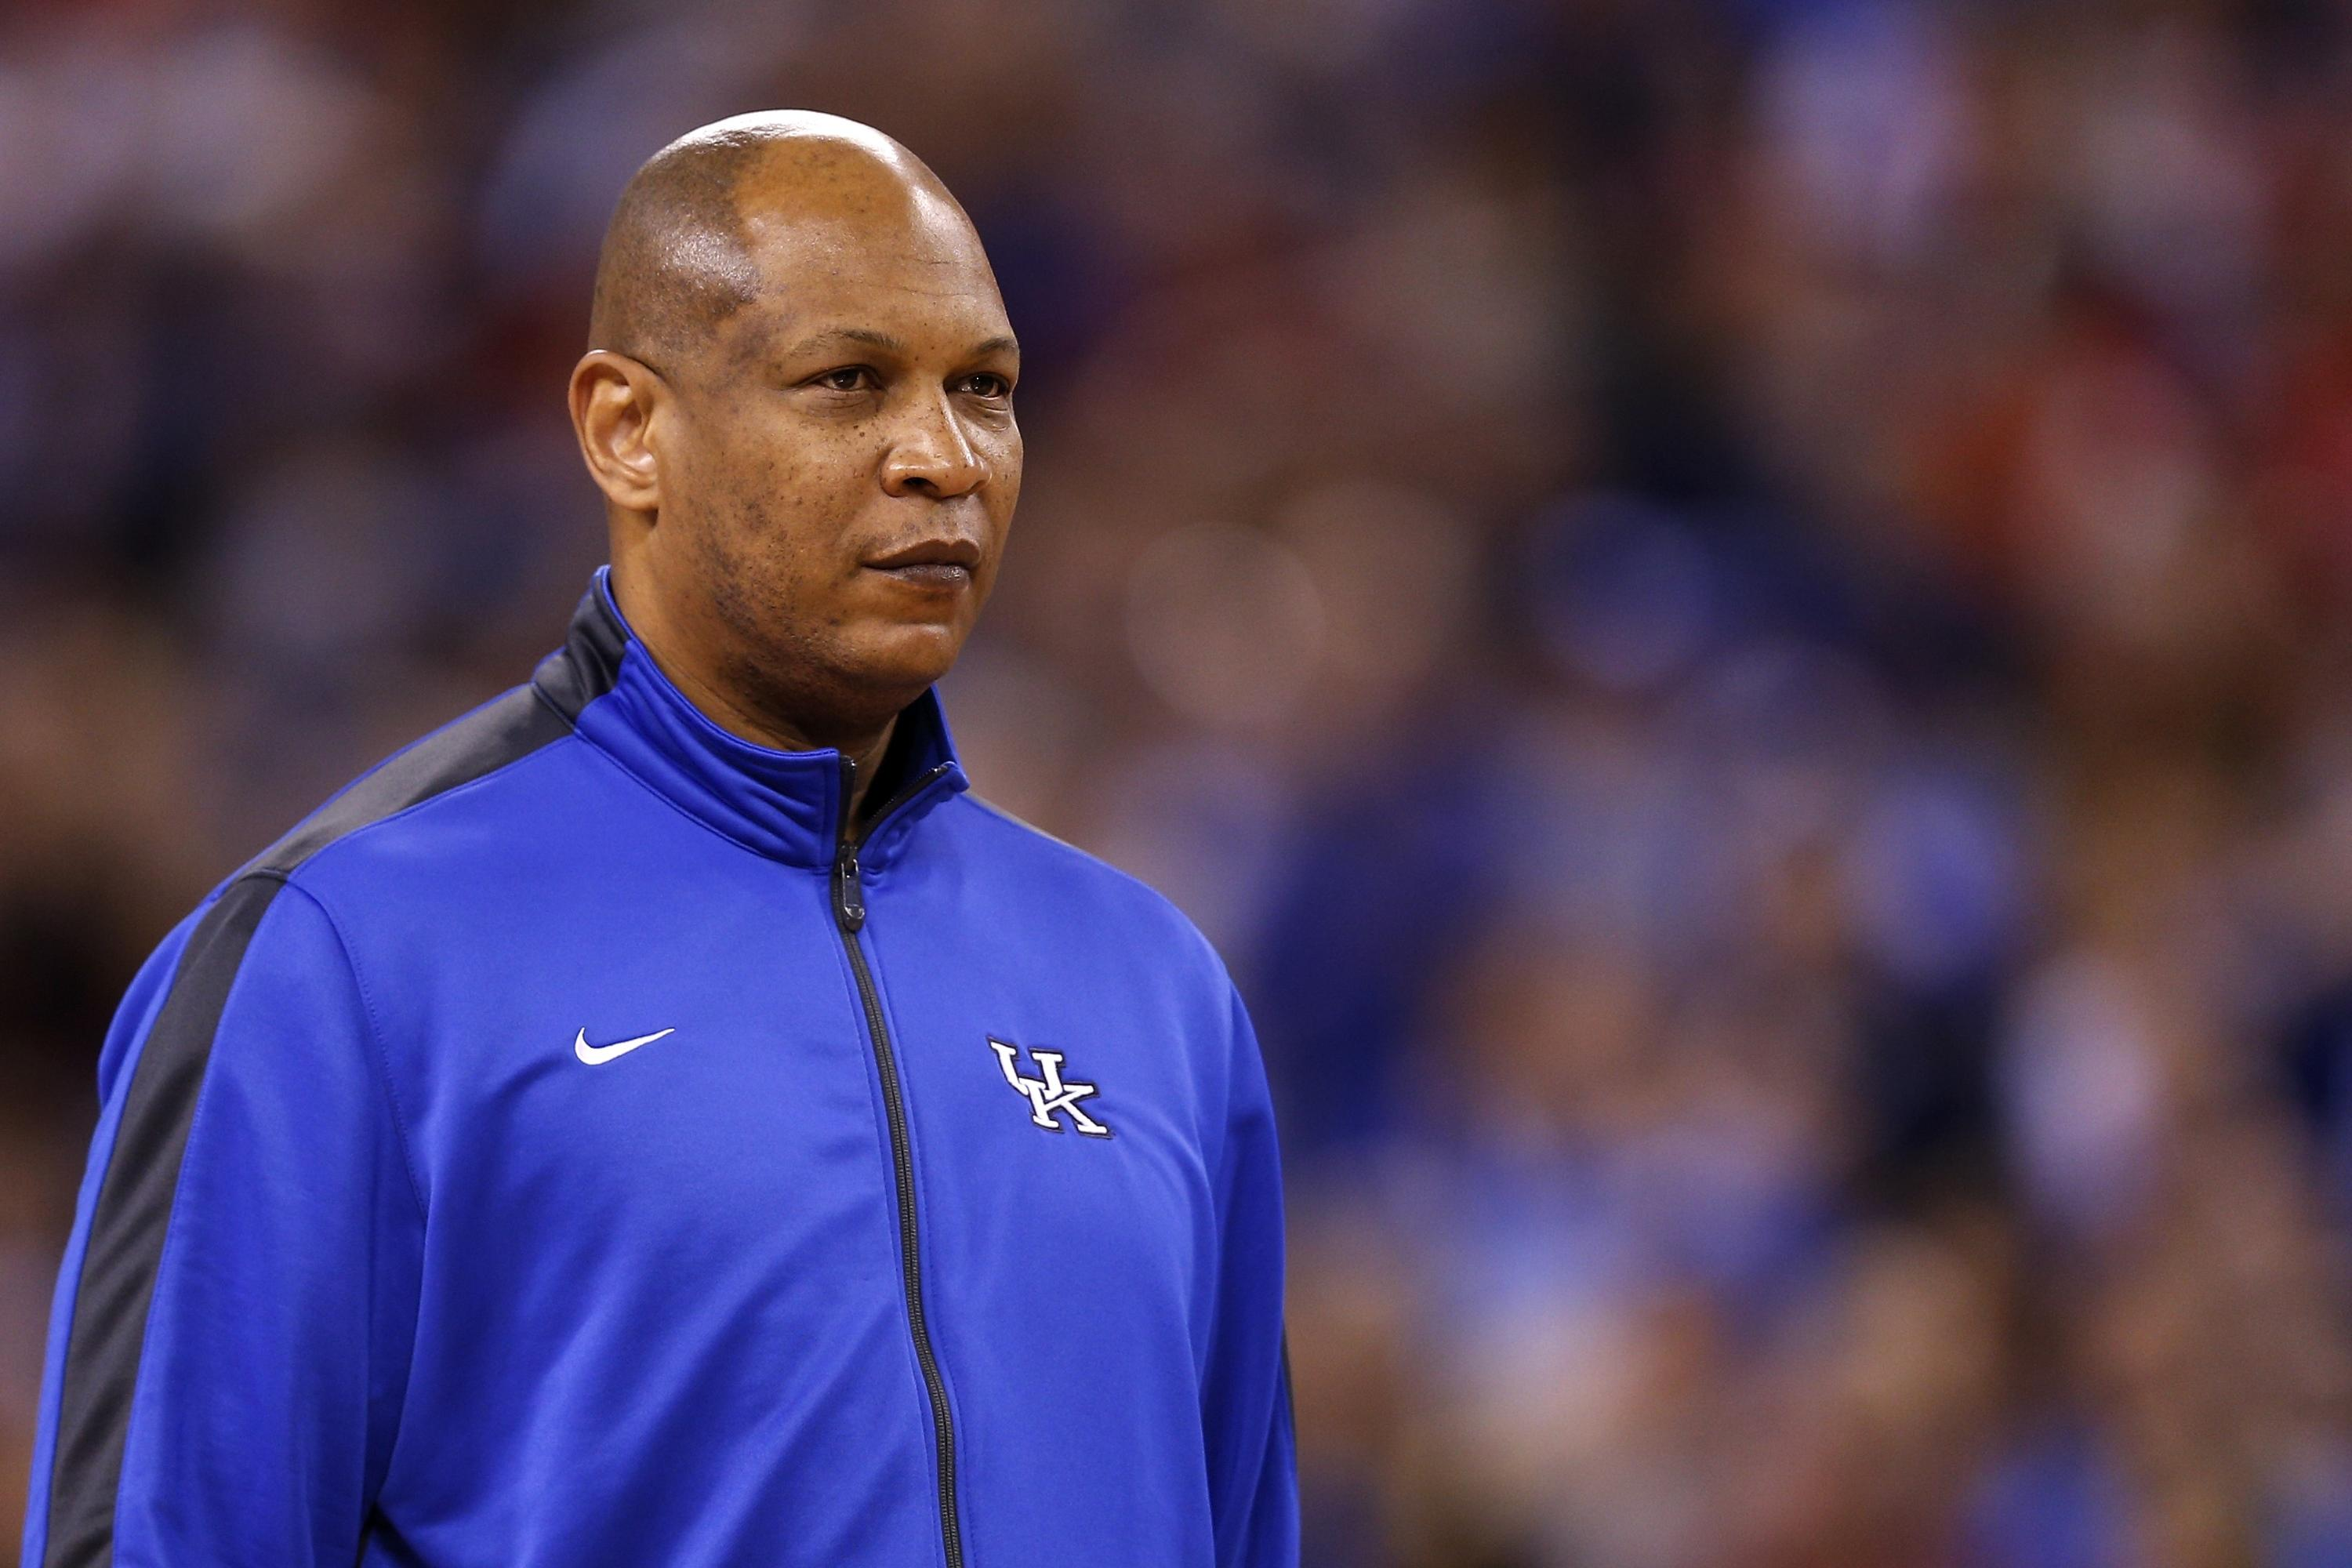 Kentucky will pay top assistant Kenny Payne lavishly to stay put